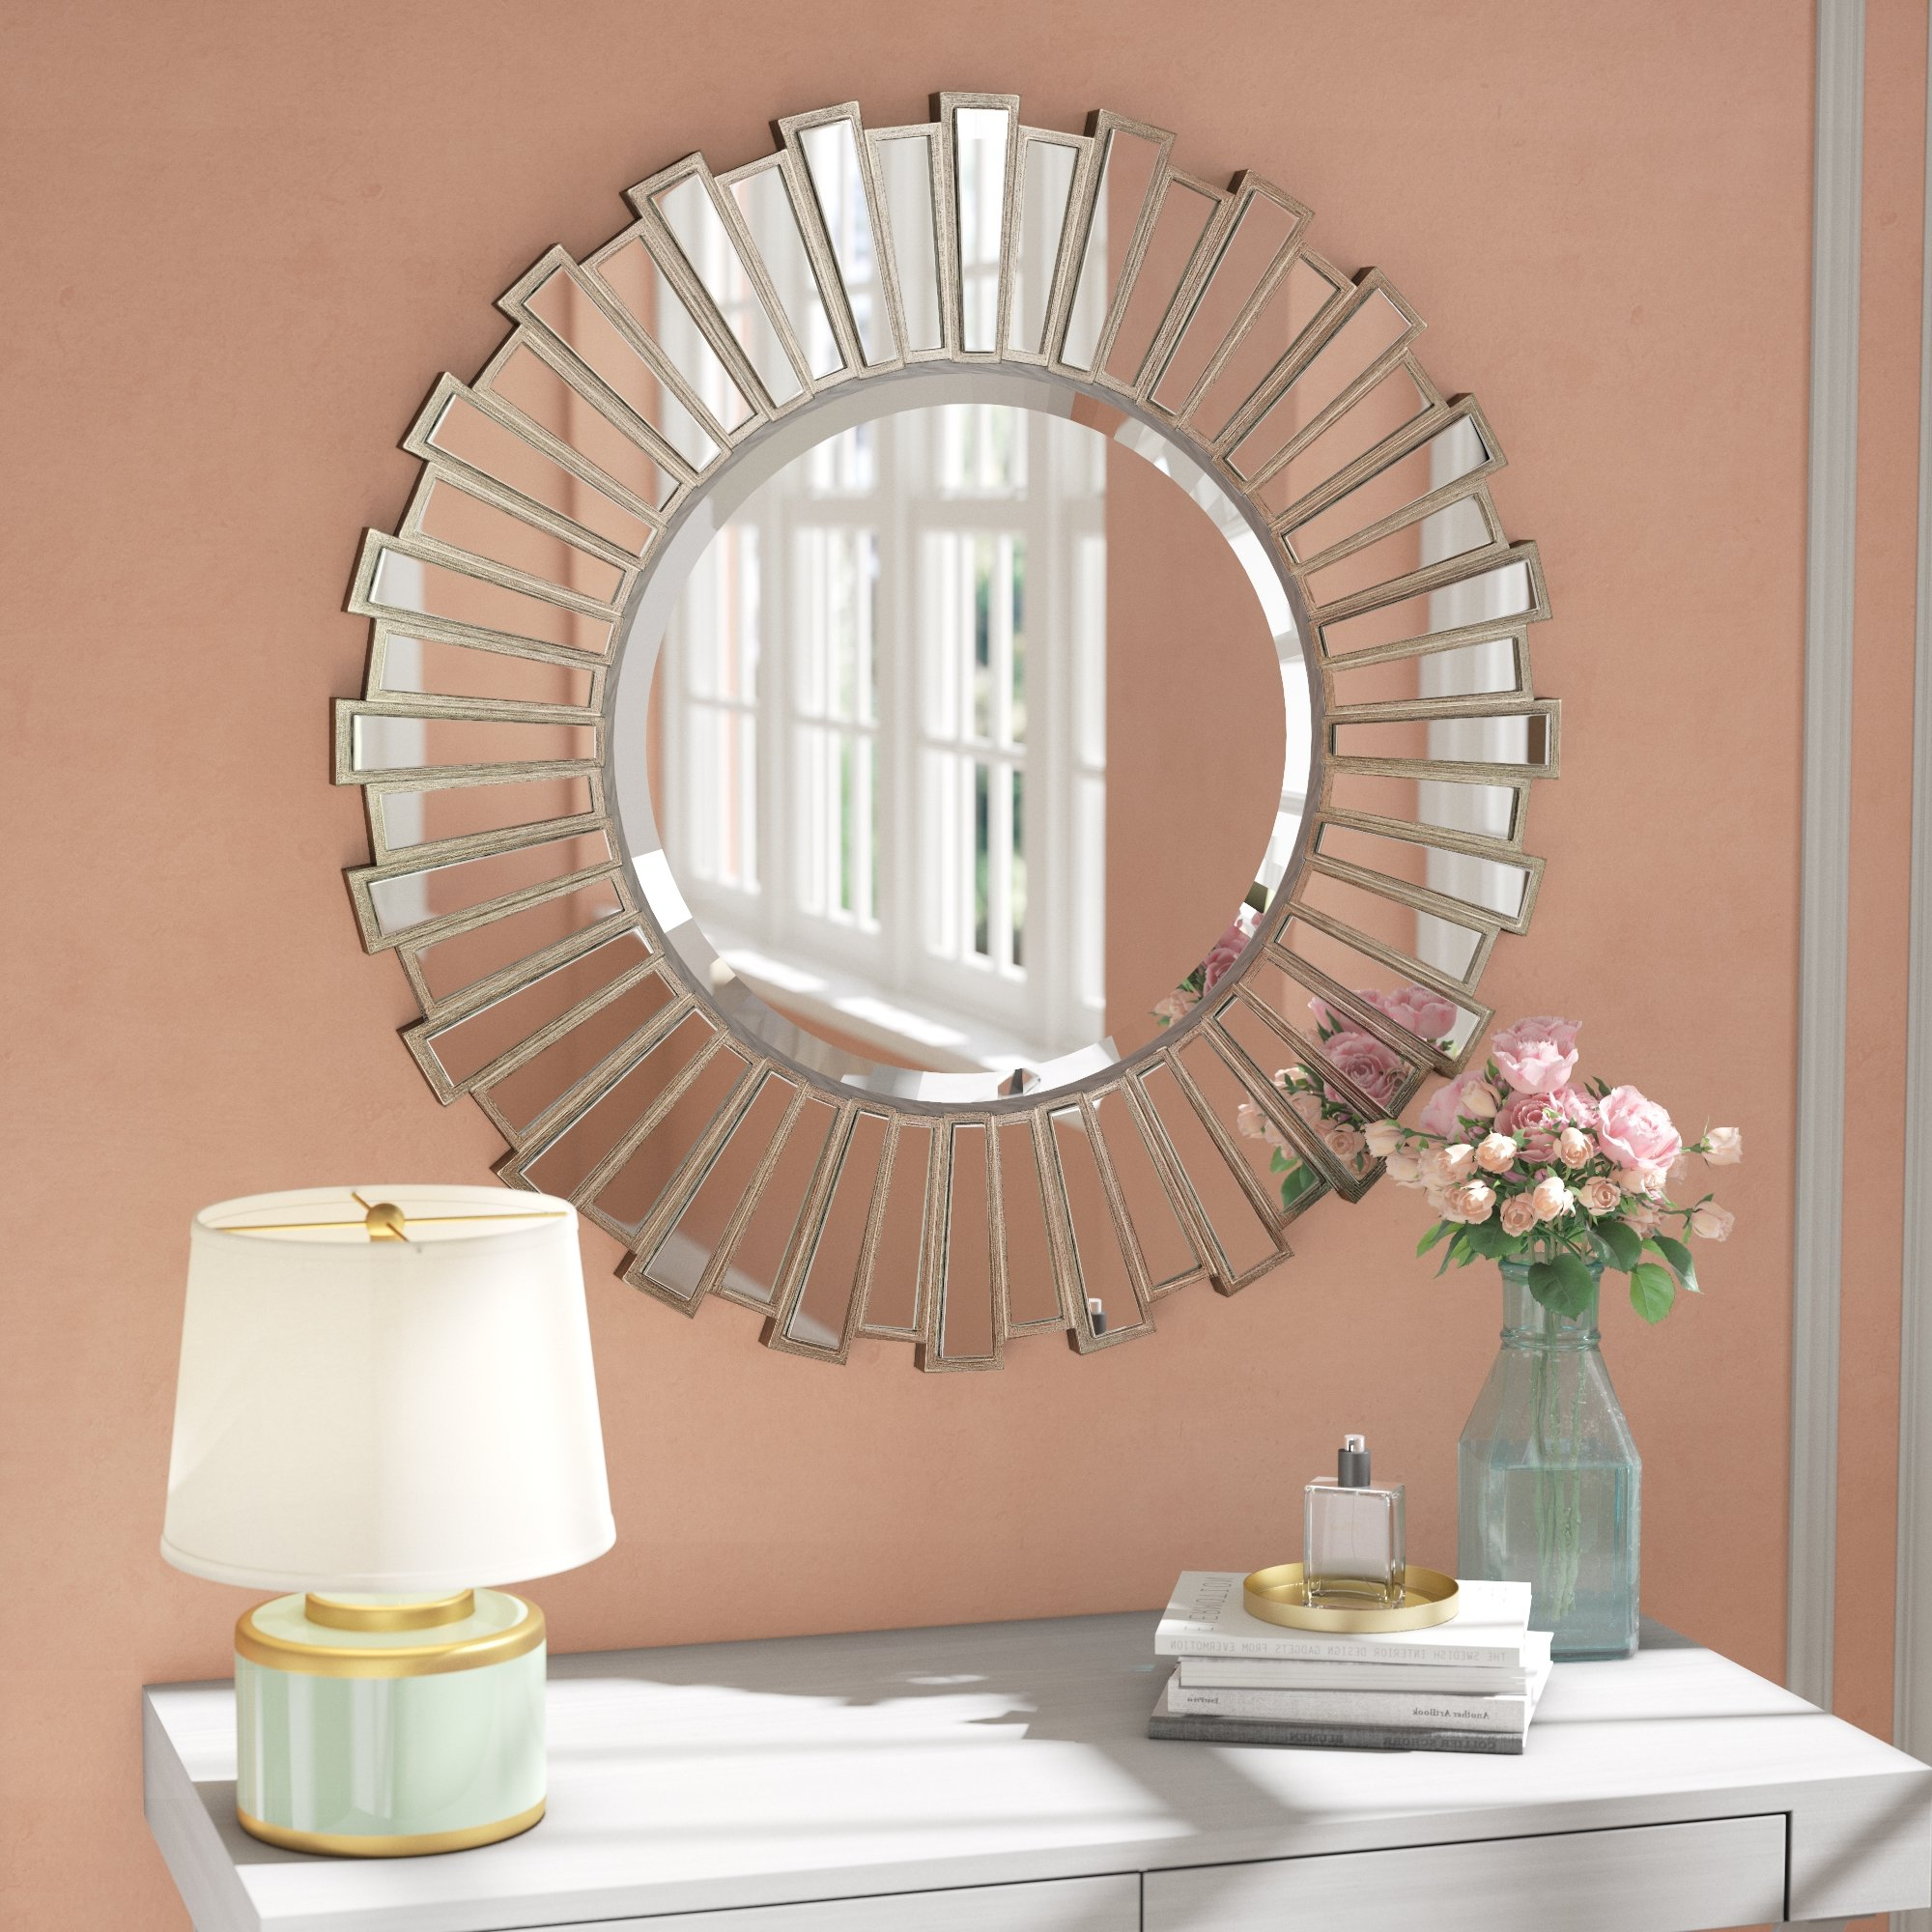 Bertrand Sunburst Resin Accent Wall Mirror Within Most Current Accent Wall Mirrors (View 4 of 20)